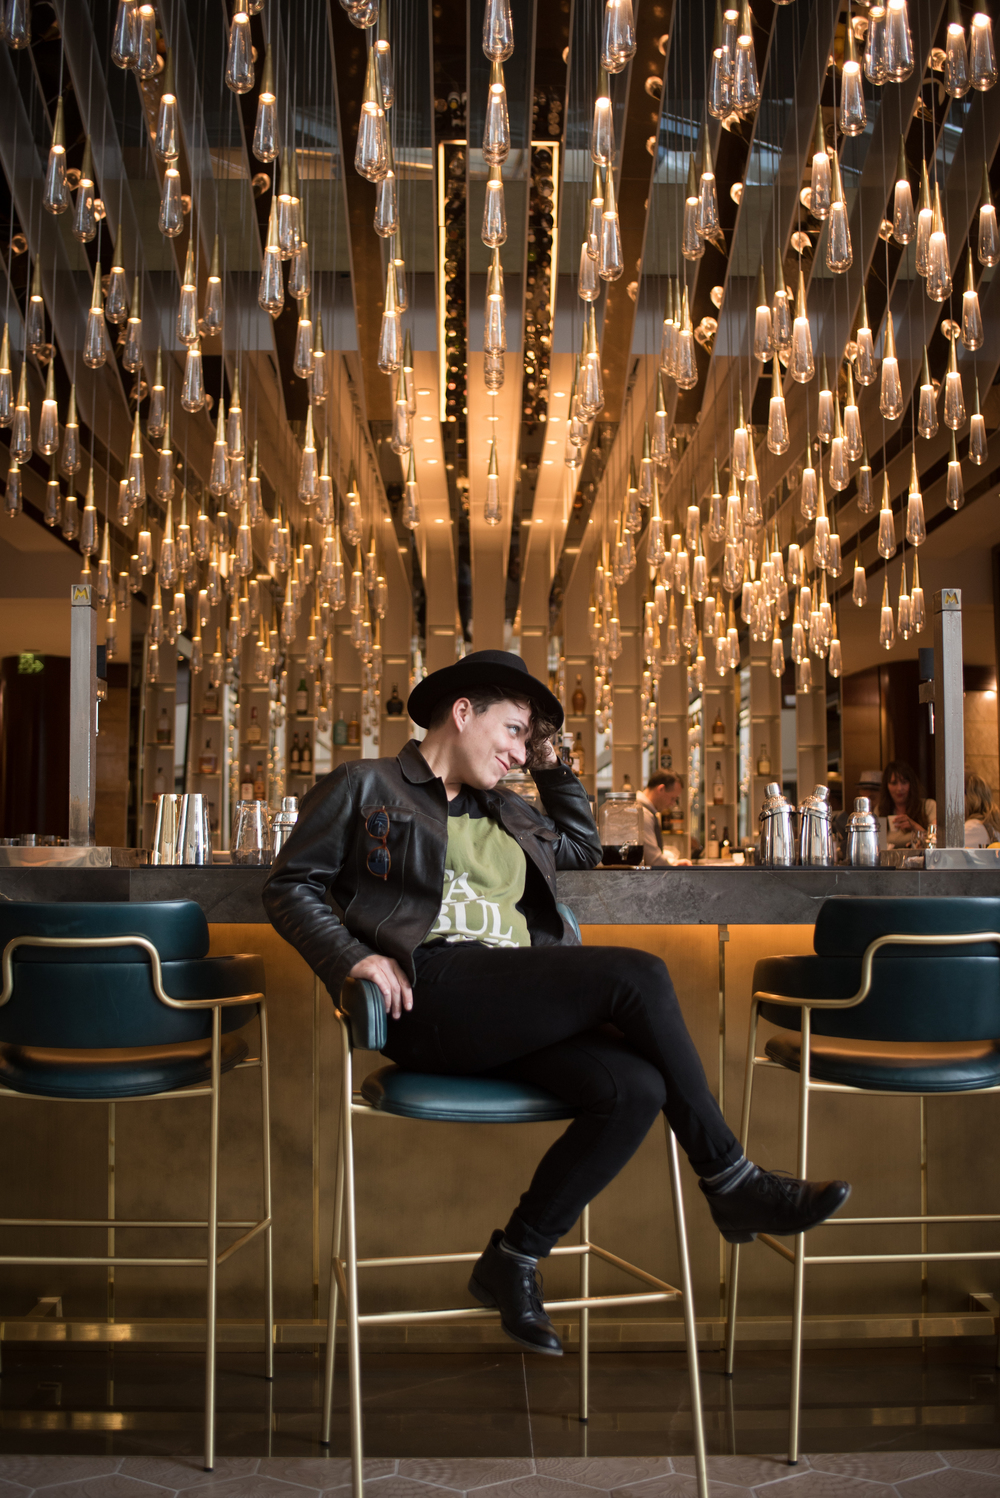 We love Roberta's style! In the Fairmont's renovated lobby. Captured by Francisco